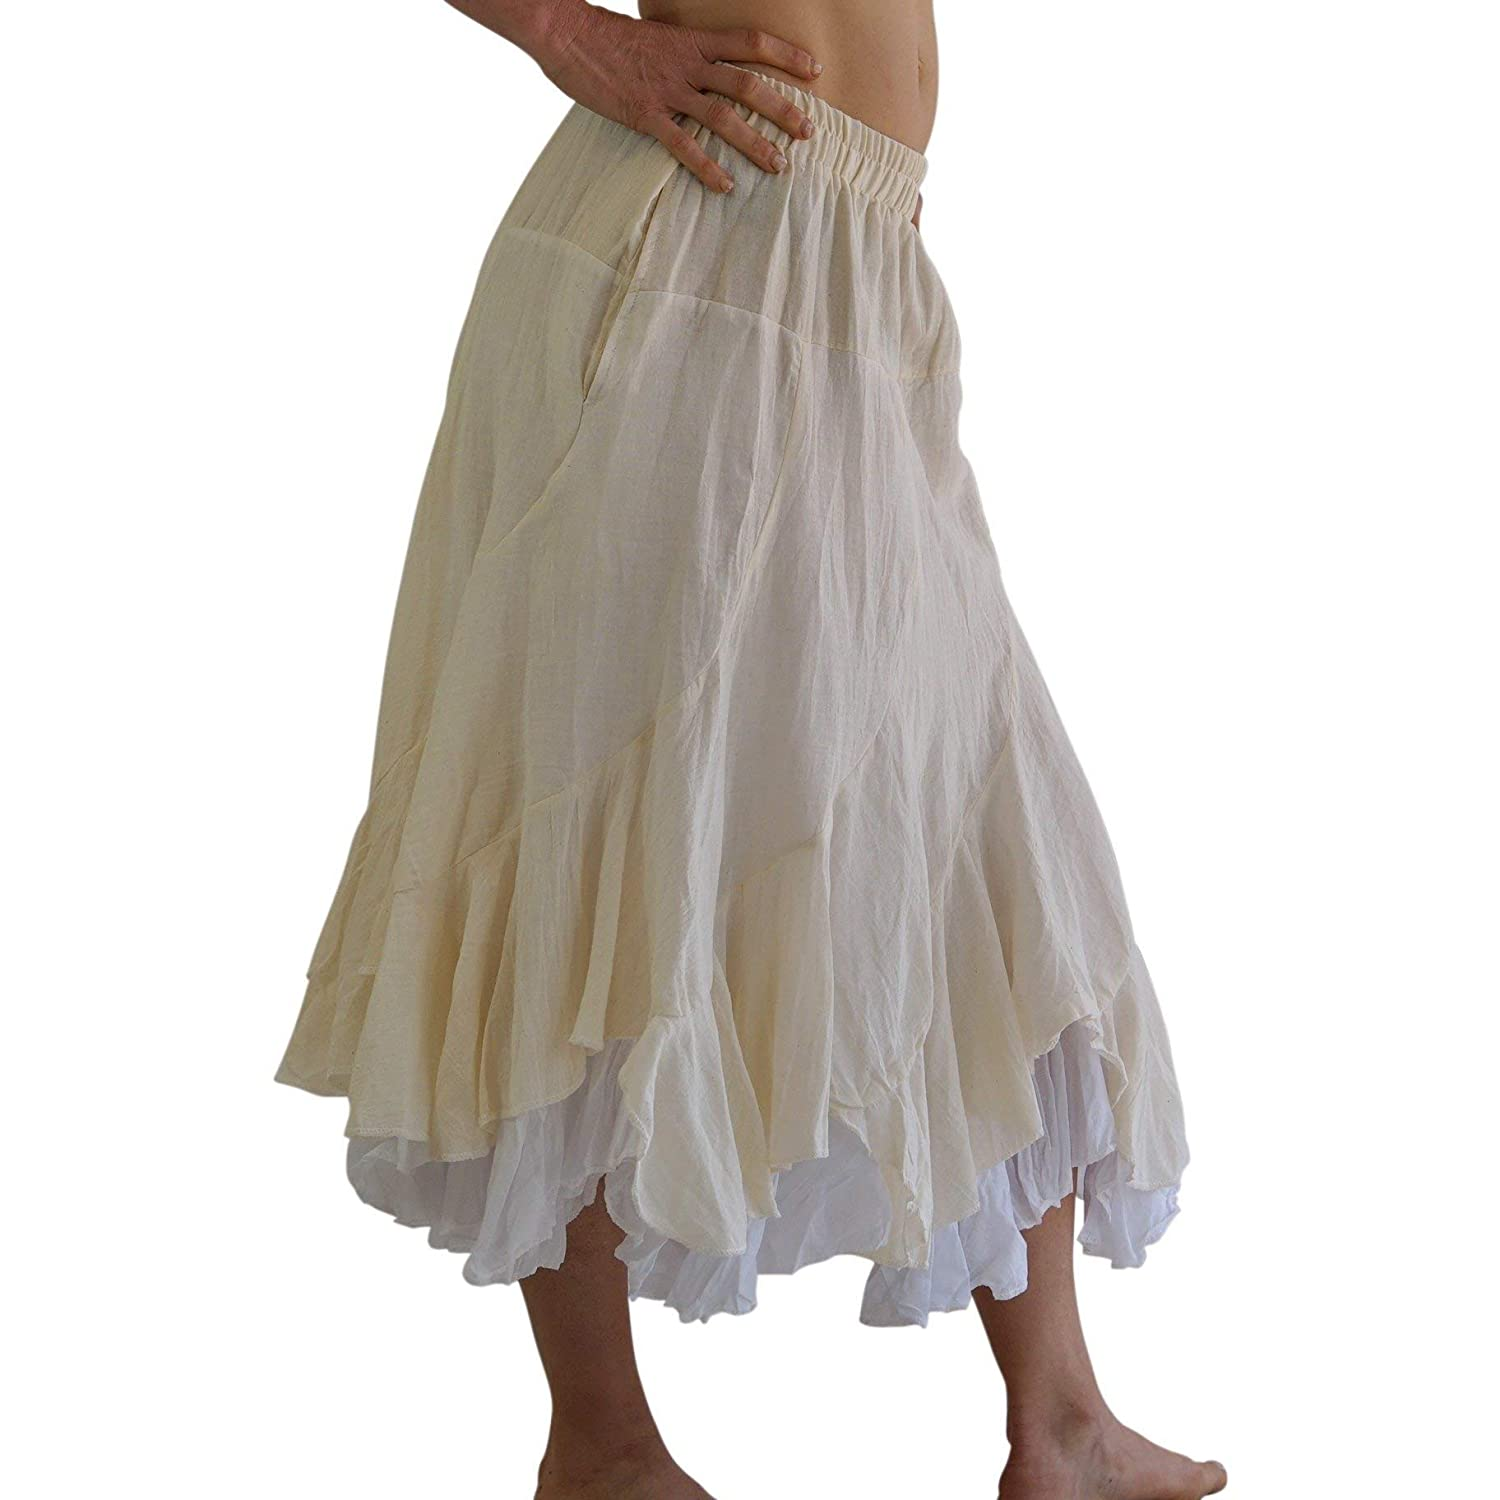 zootzu Two Layer Gypsy Renaissance Skirt Cream//White